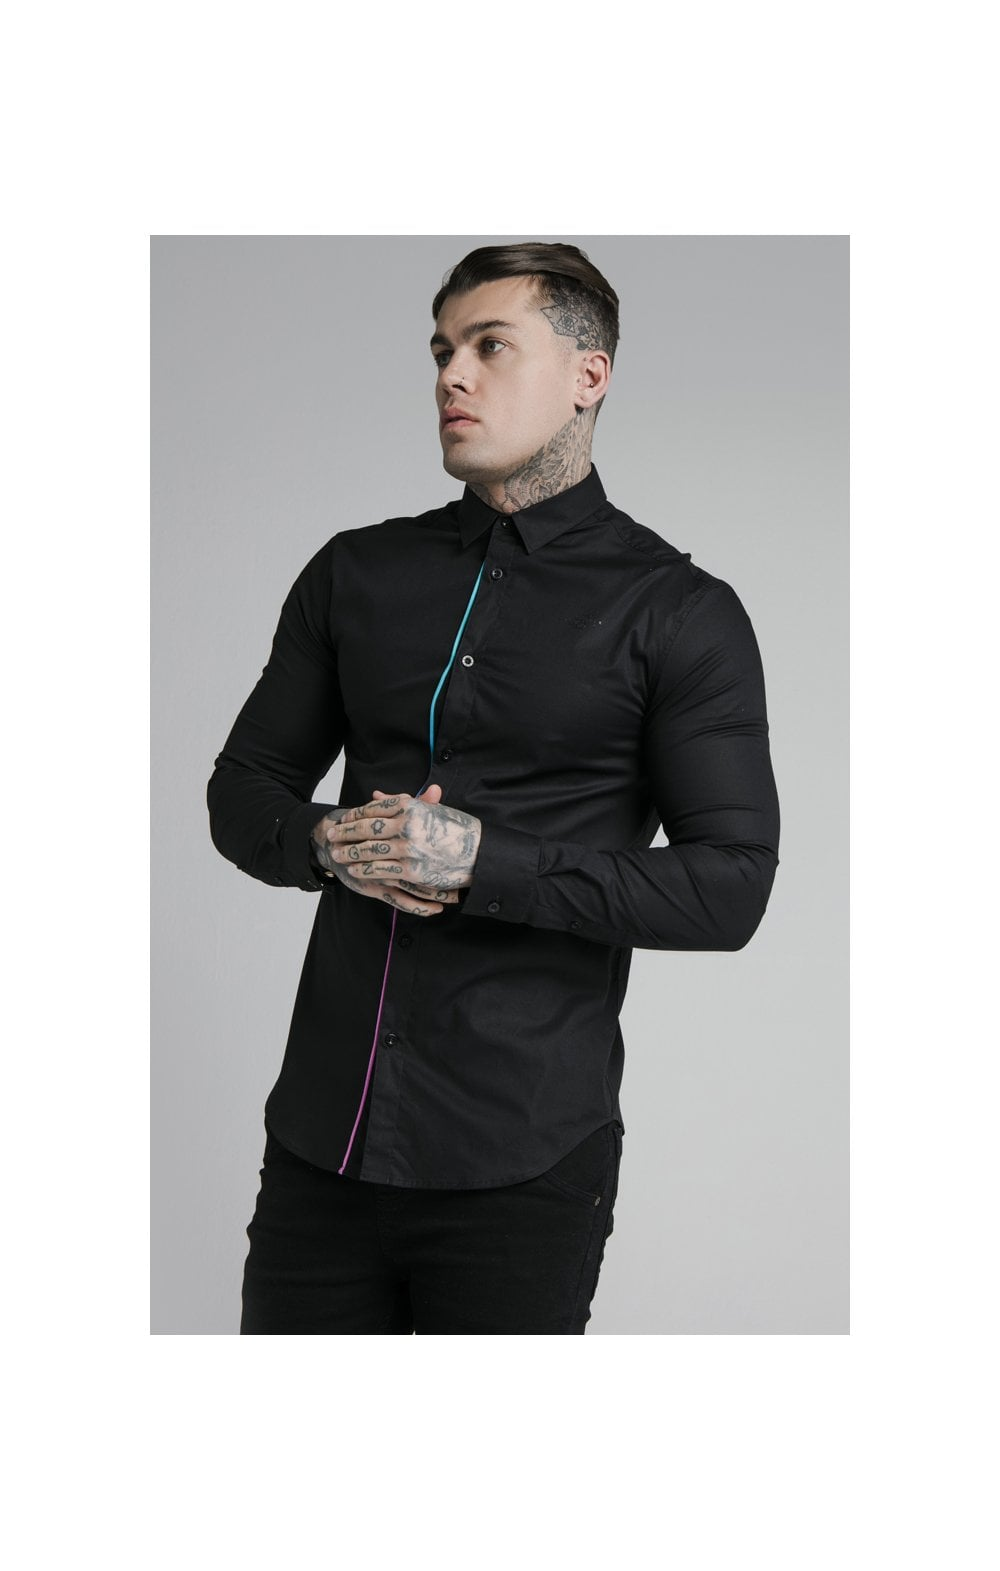 Load image into Gallery viewer, SikSilk L/S Fade Piping Shirt - Black & Neon Fade (1)